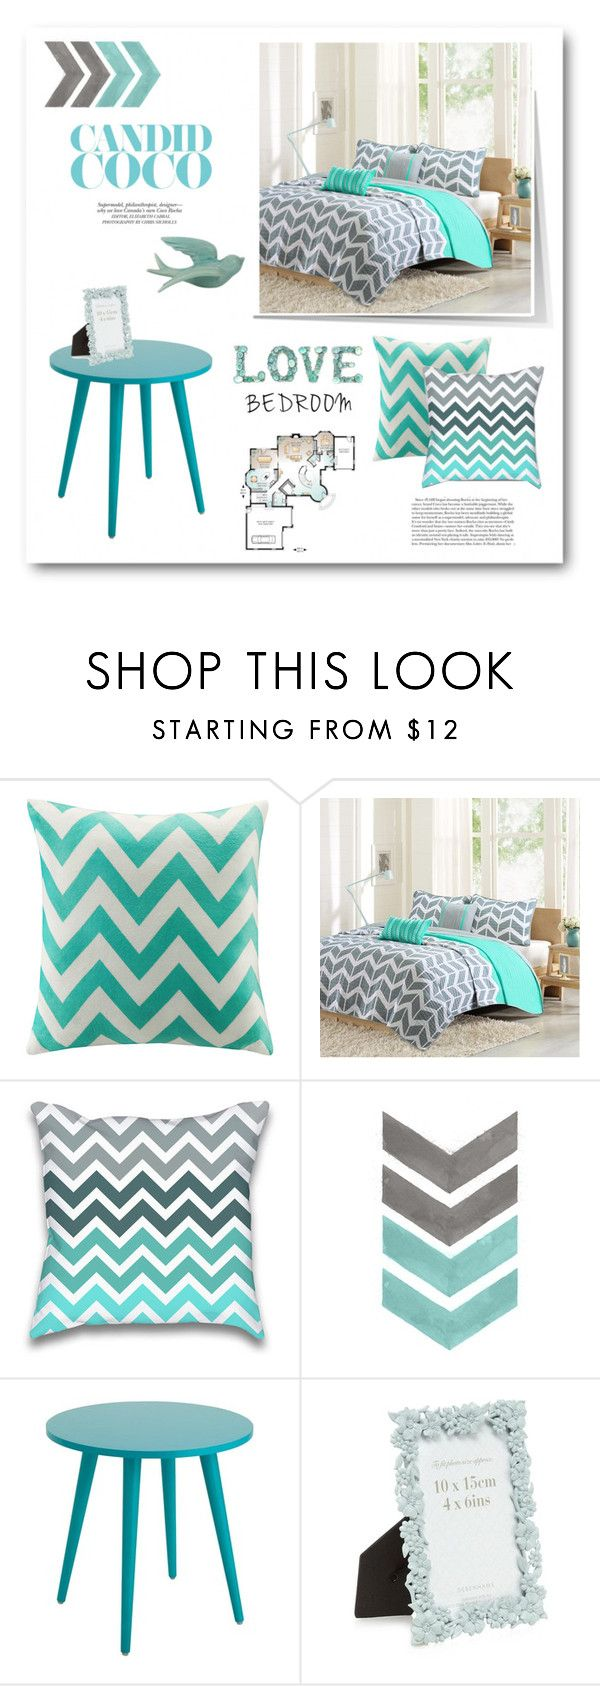 """Room re-do...#chevron #mint #grey #bedroom #decor #home #polyvore"" by fashionlibra84 ❤ liked on Polyvore featuring interior, interiors, interior design, home, home decor, interior decorating, Intelligent Design, WALL and bedroom"